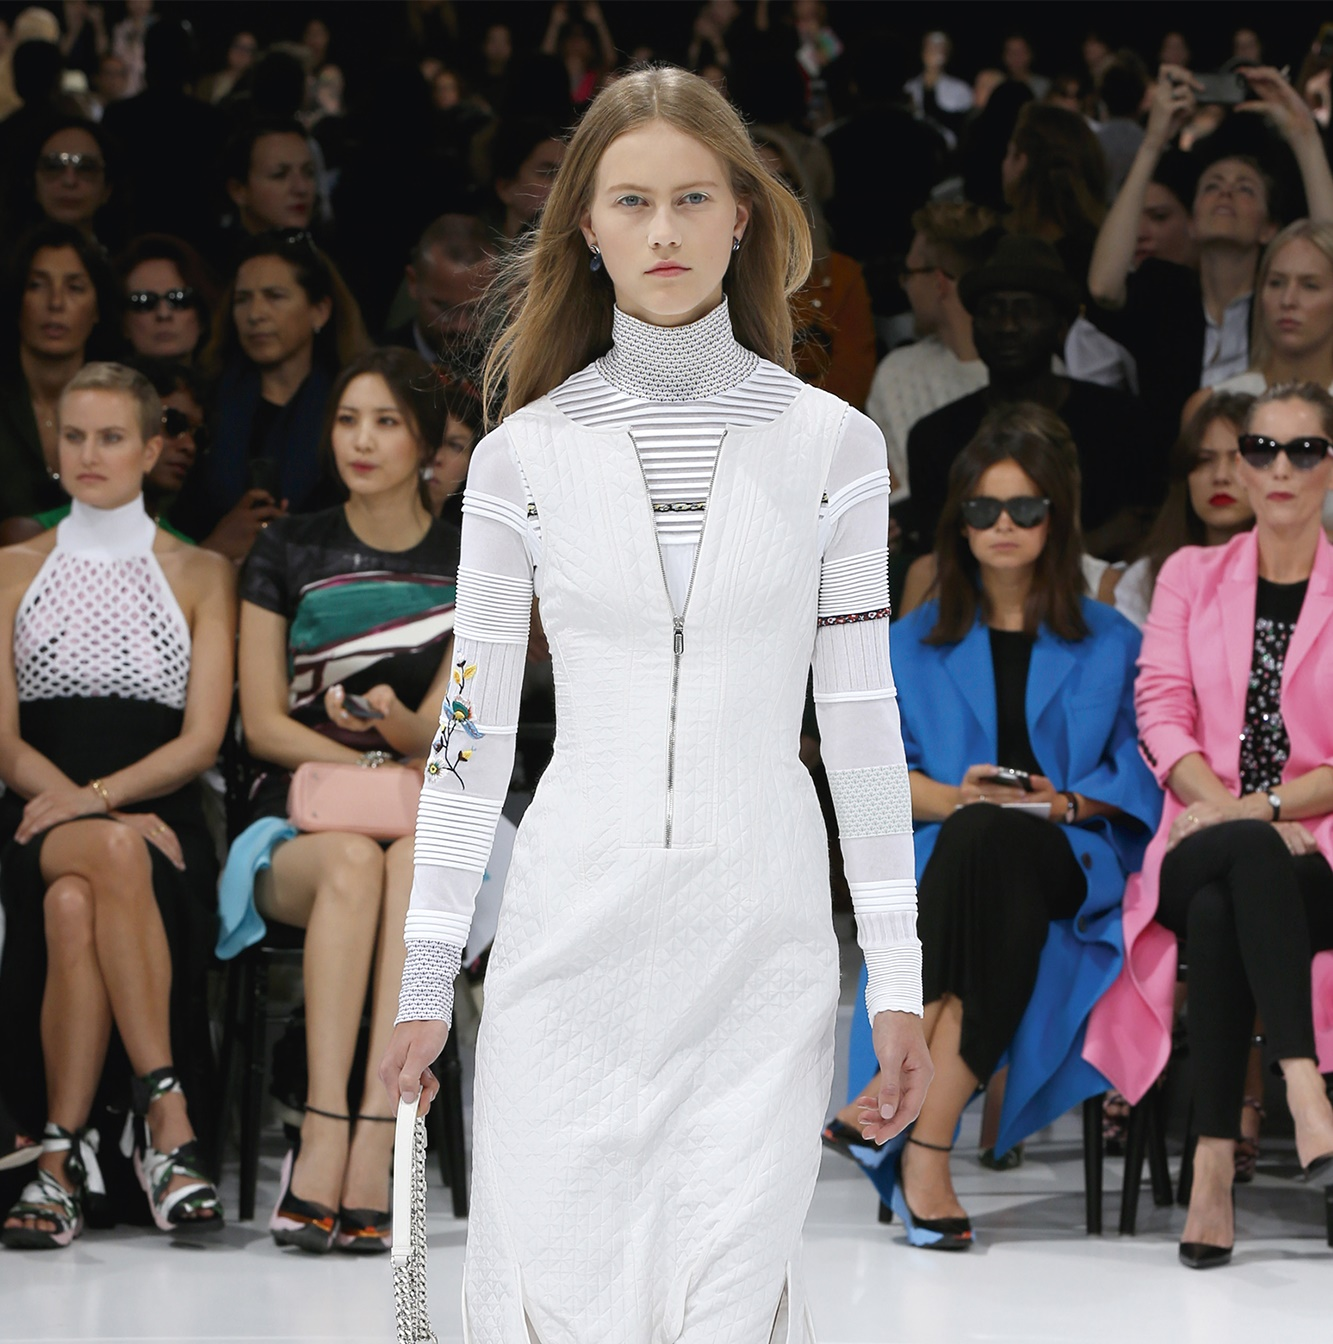 Christian dior spring summer rtw collection 19